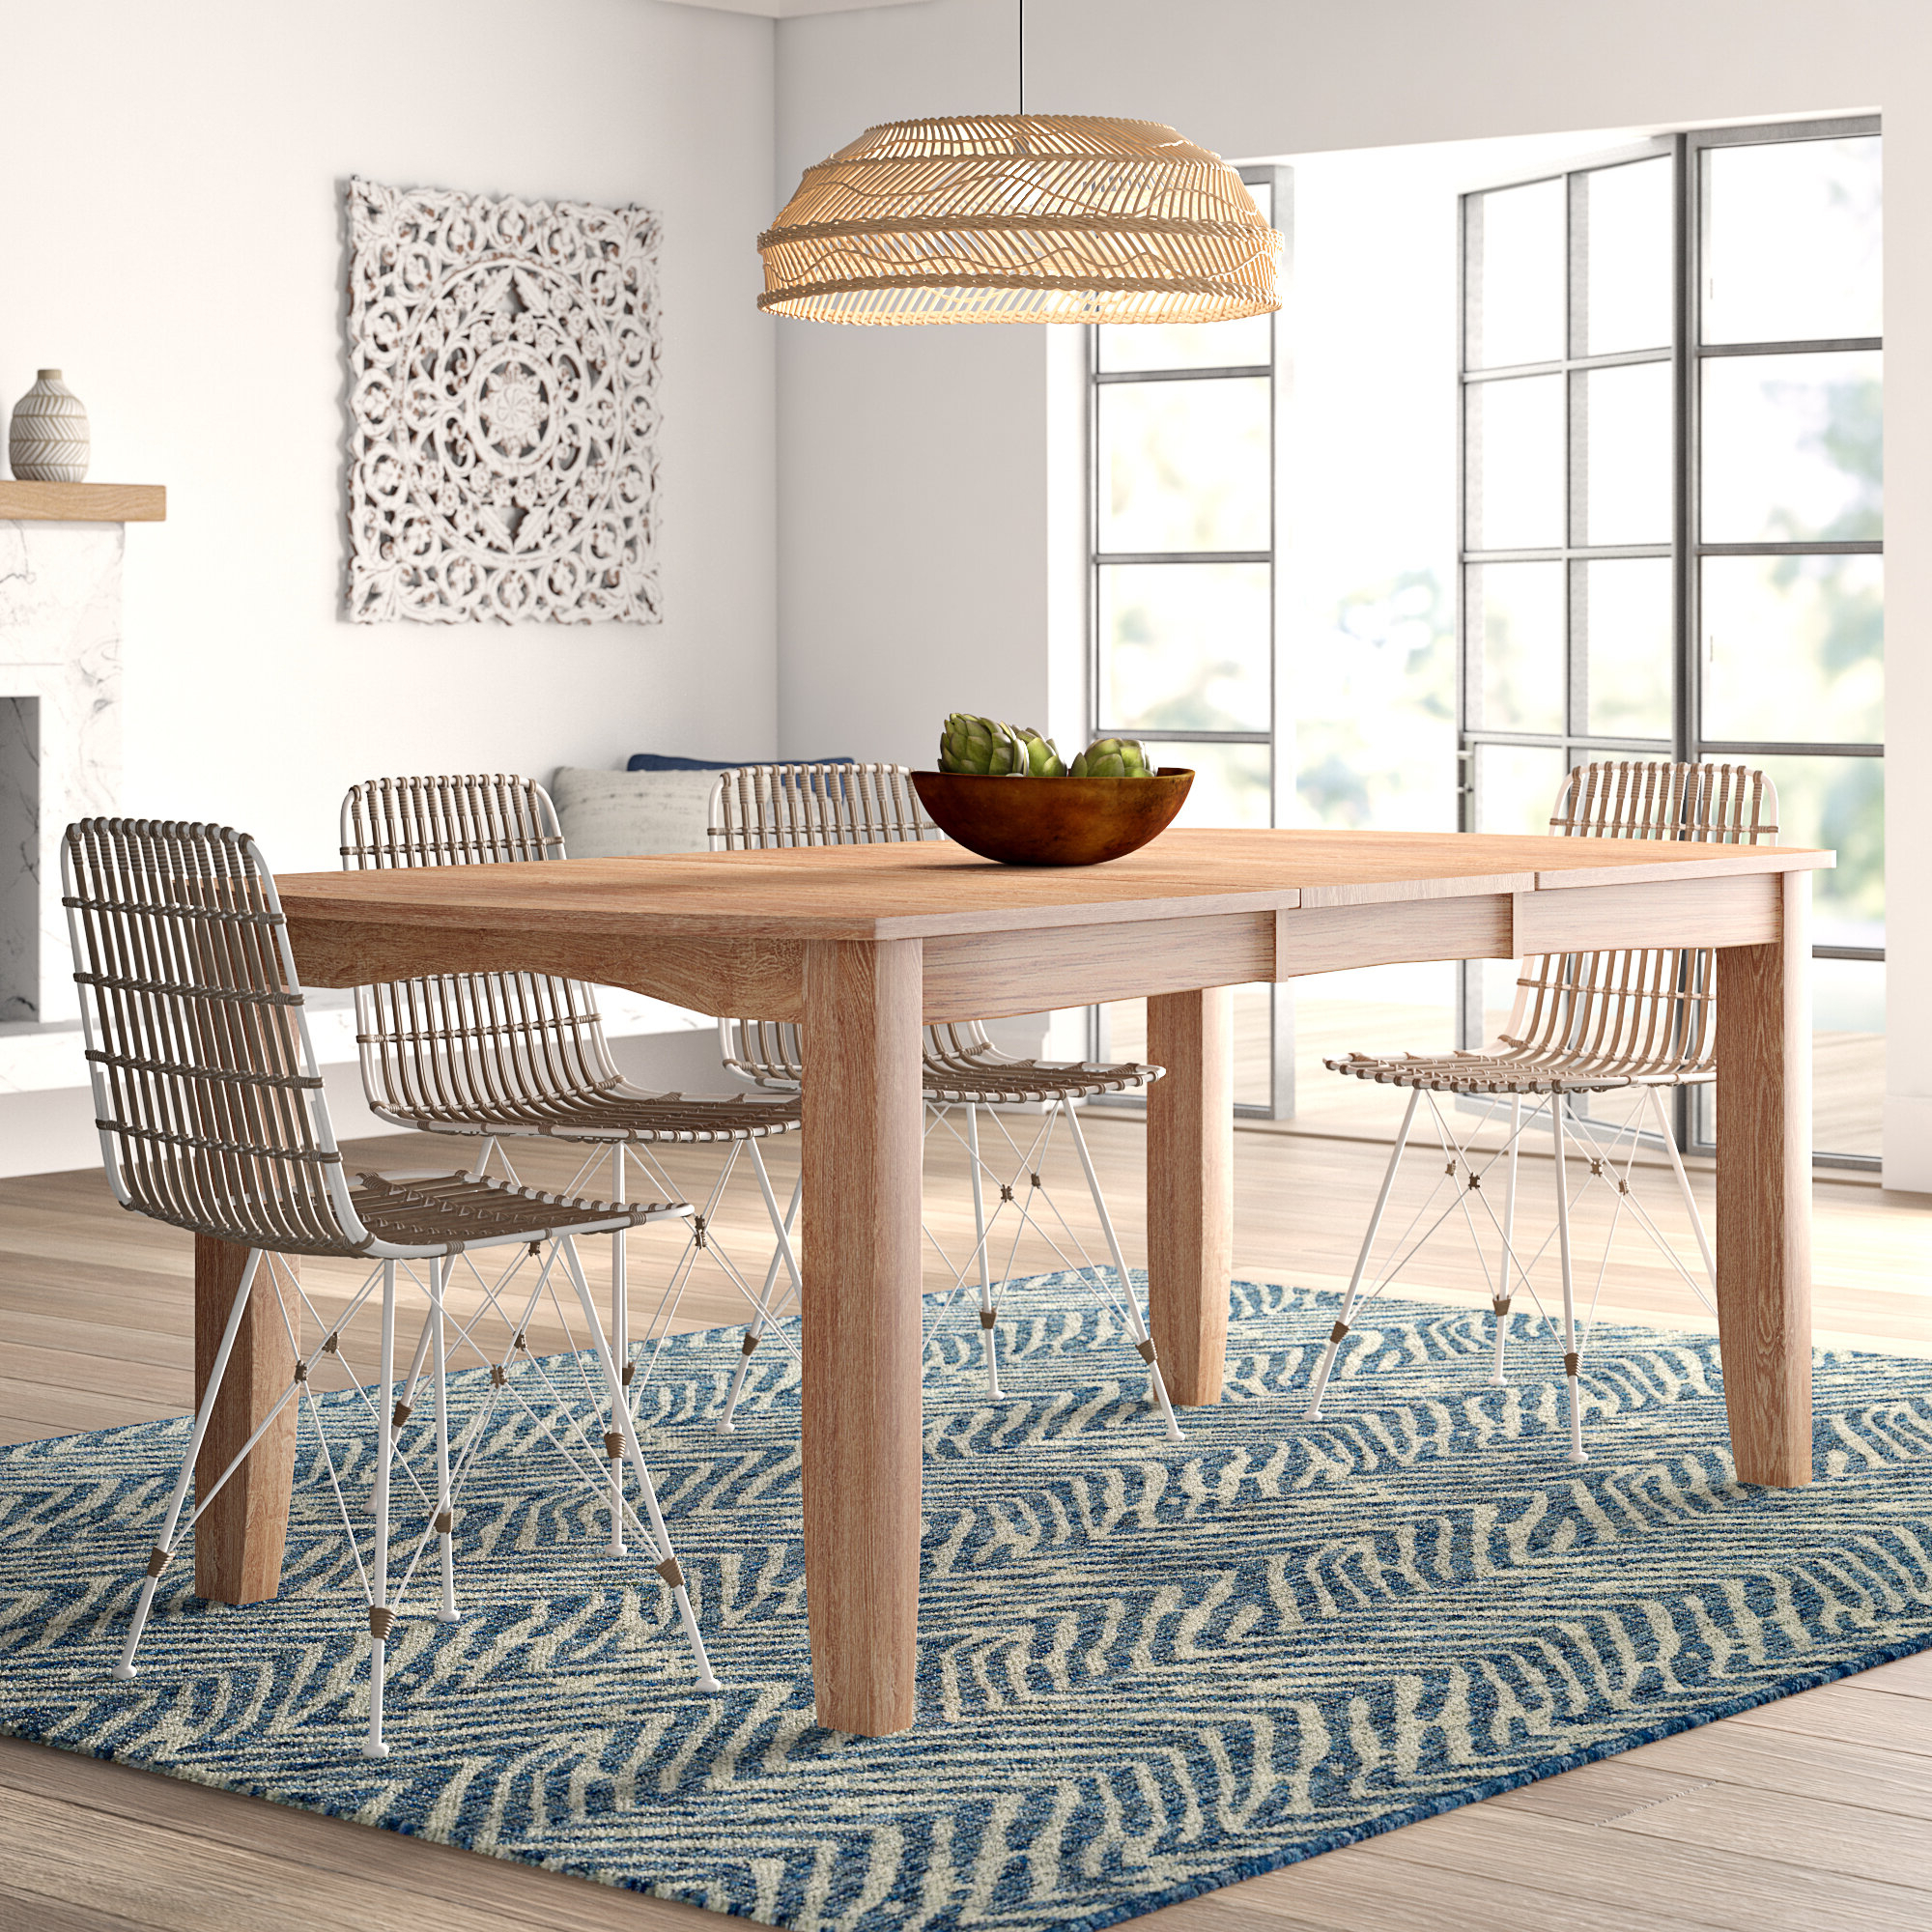 Current Mistana Lynn Extendable Solid Wood Dining Table & Reviews For 8 Seater Wood Contemporary Dining Tables With Extension Leaf (View 9 of 25)